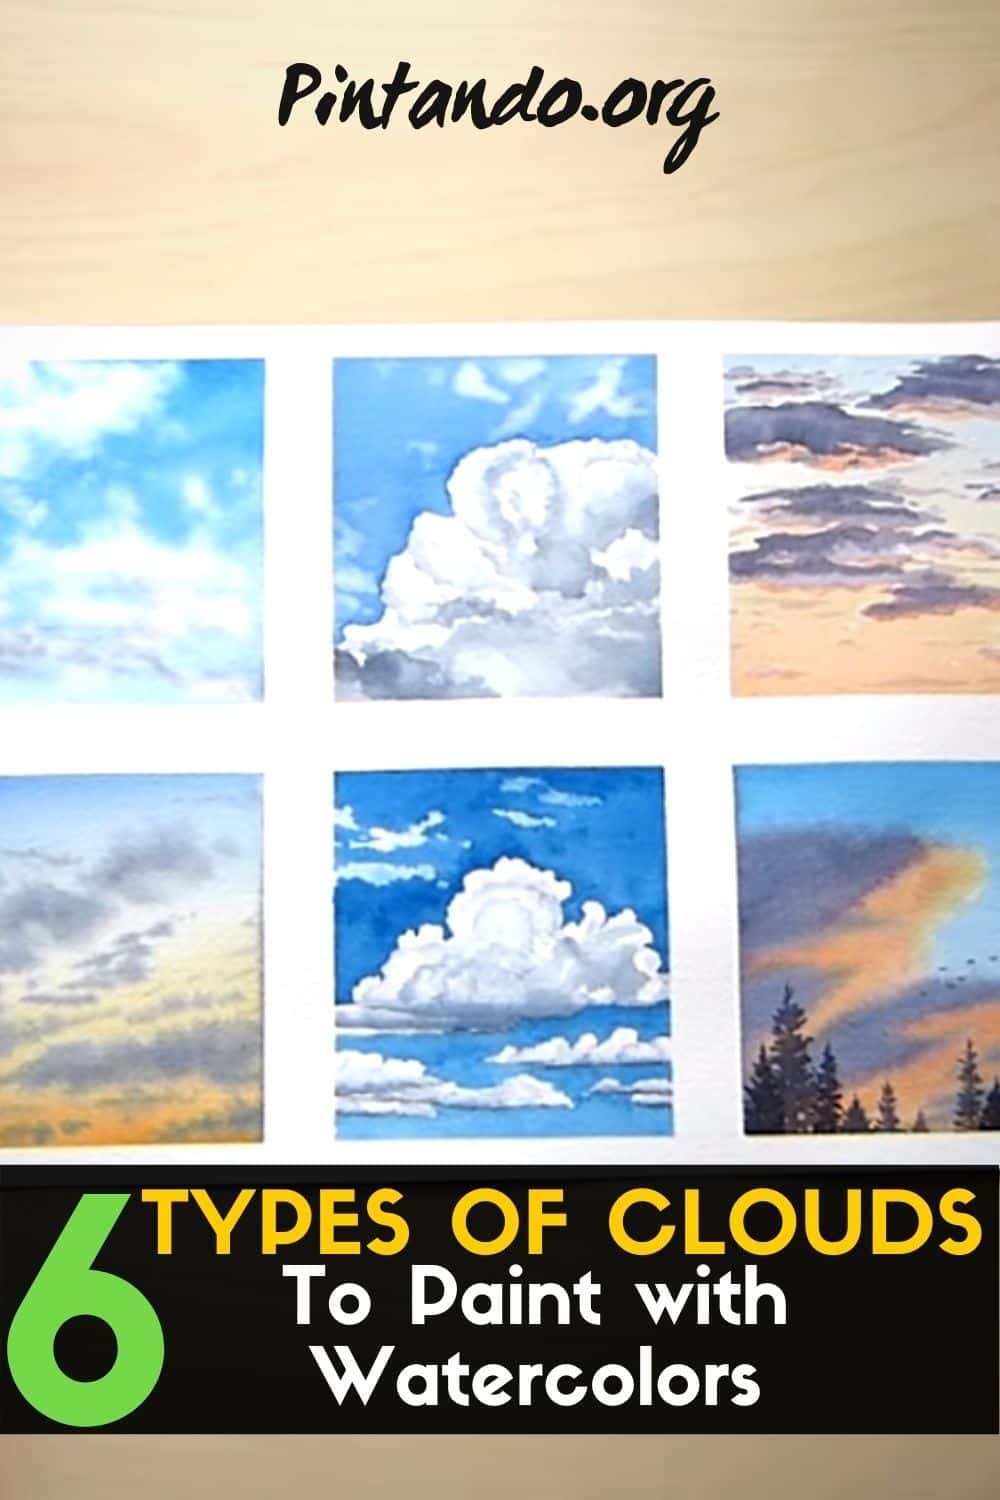 6 Types of Clouds to Paint with Watercolors (1)-min